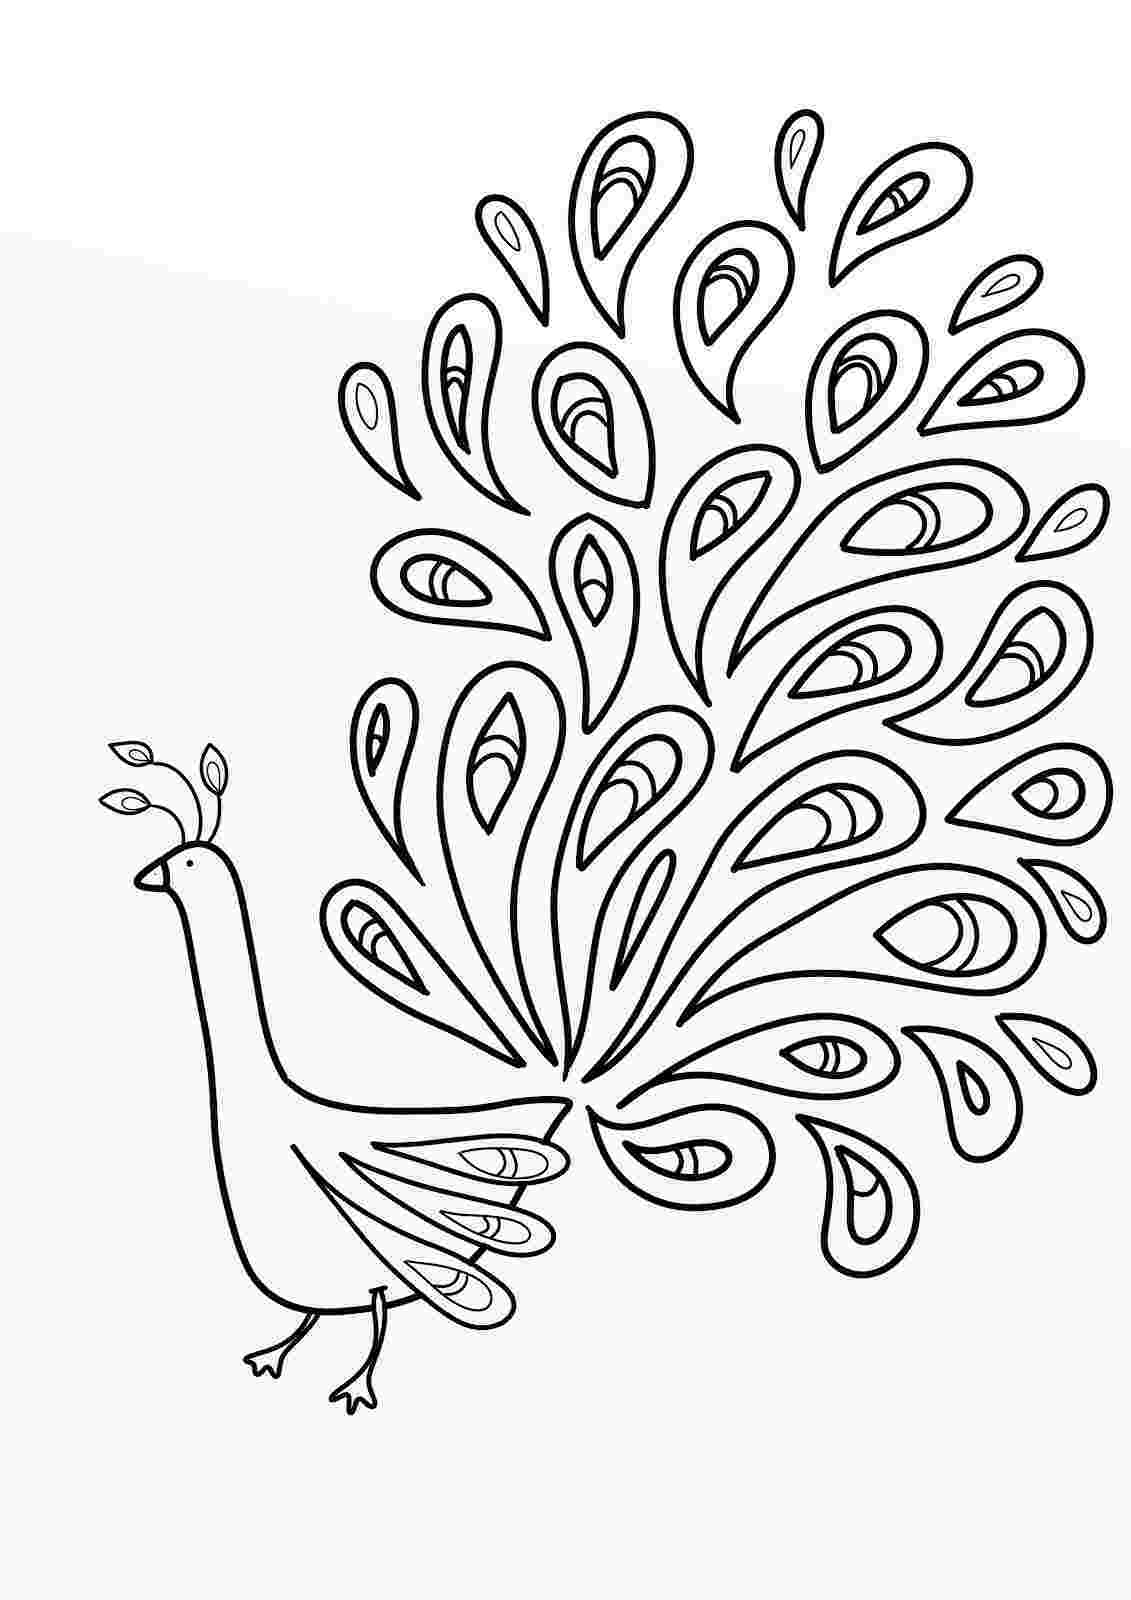 peacock coloring images peacocks to color for kids peacocks kids coloring pages images peacock coloring